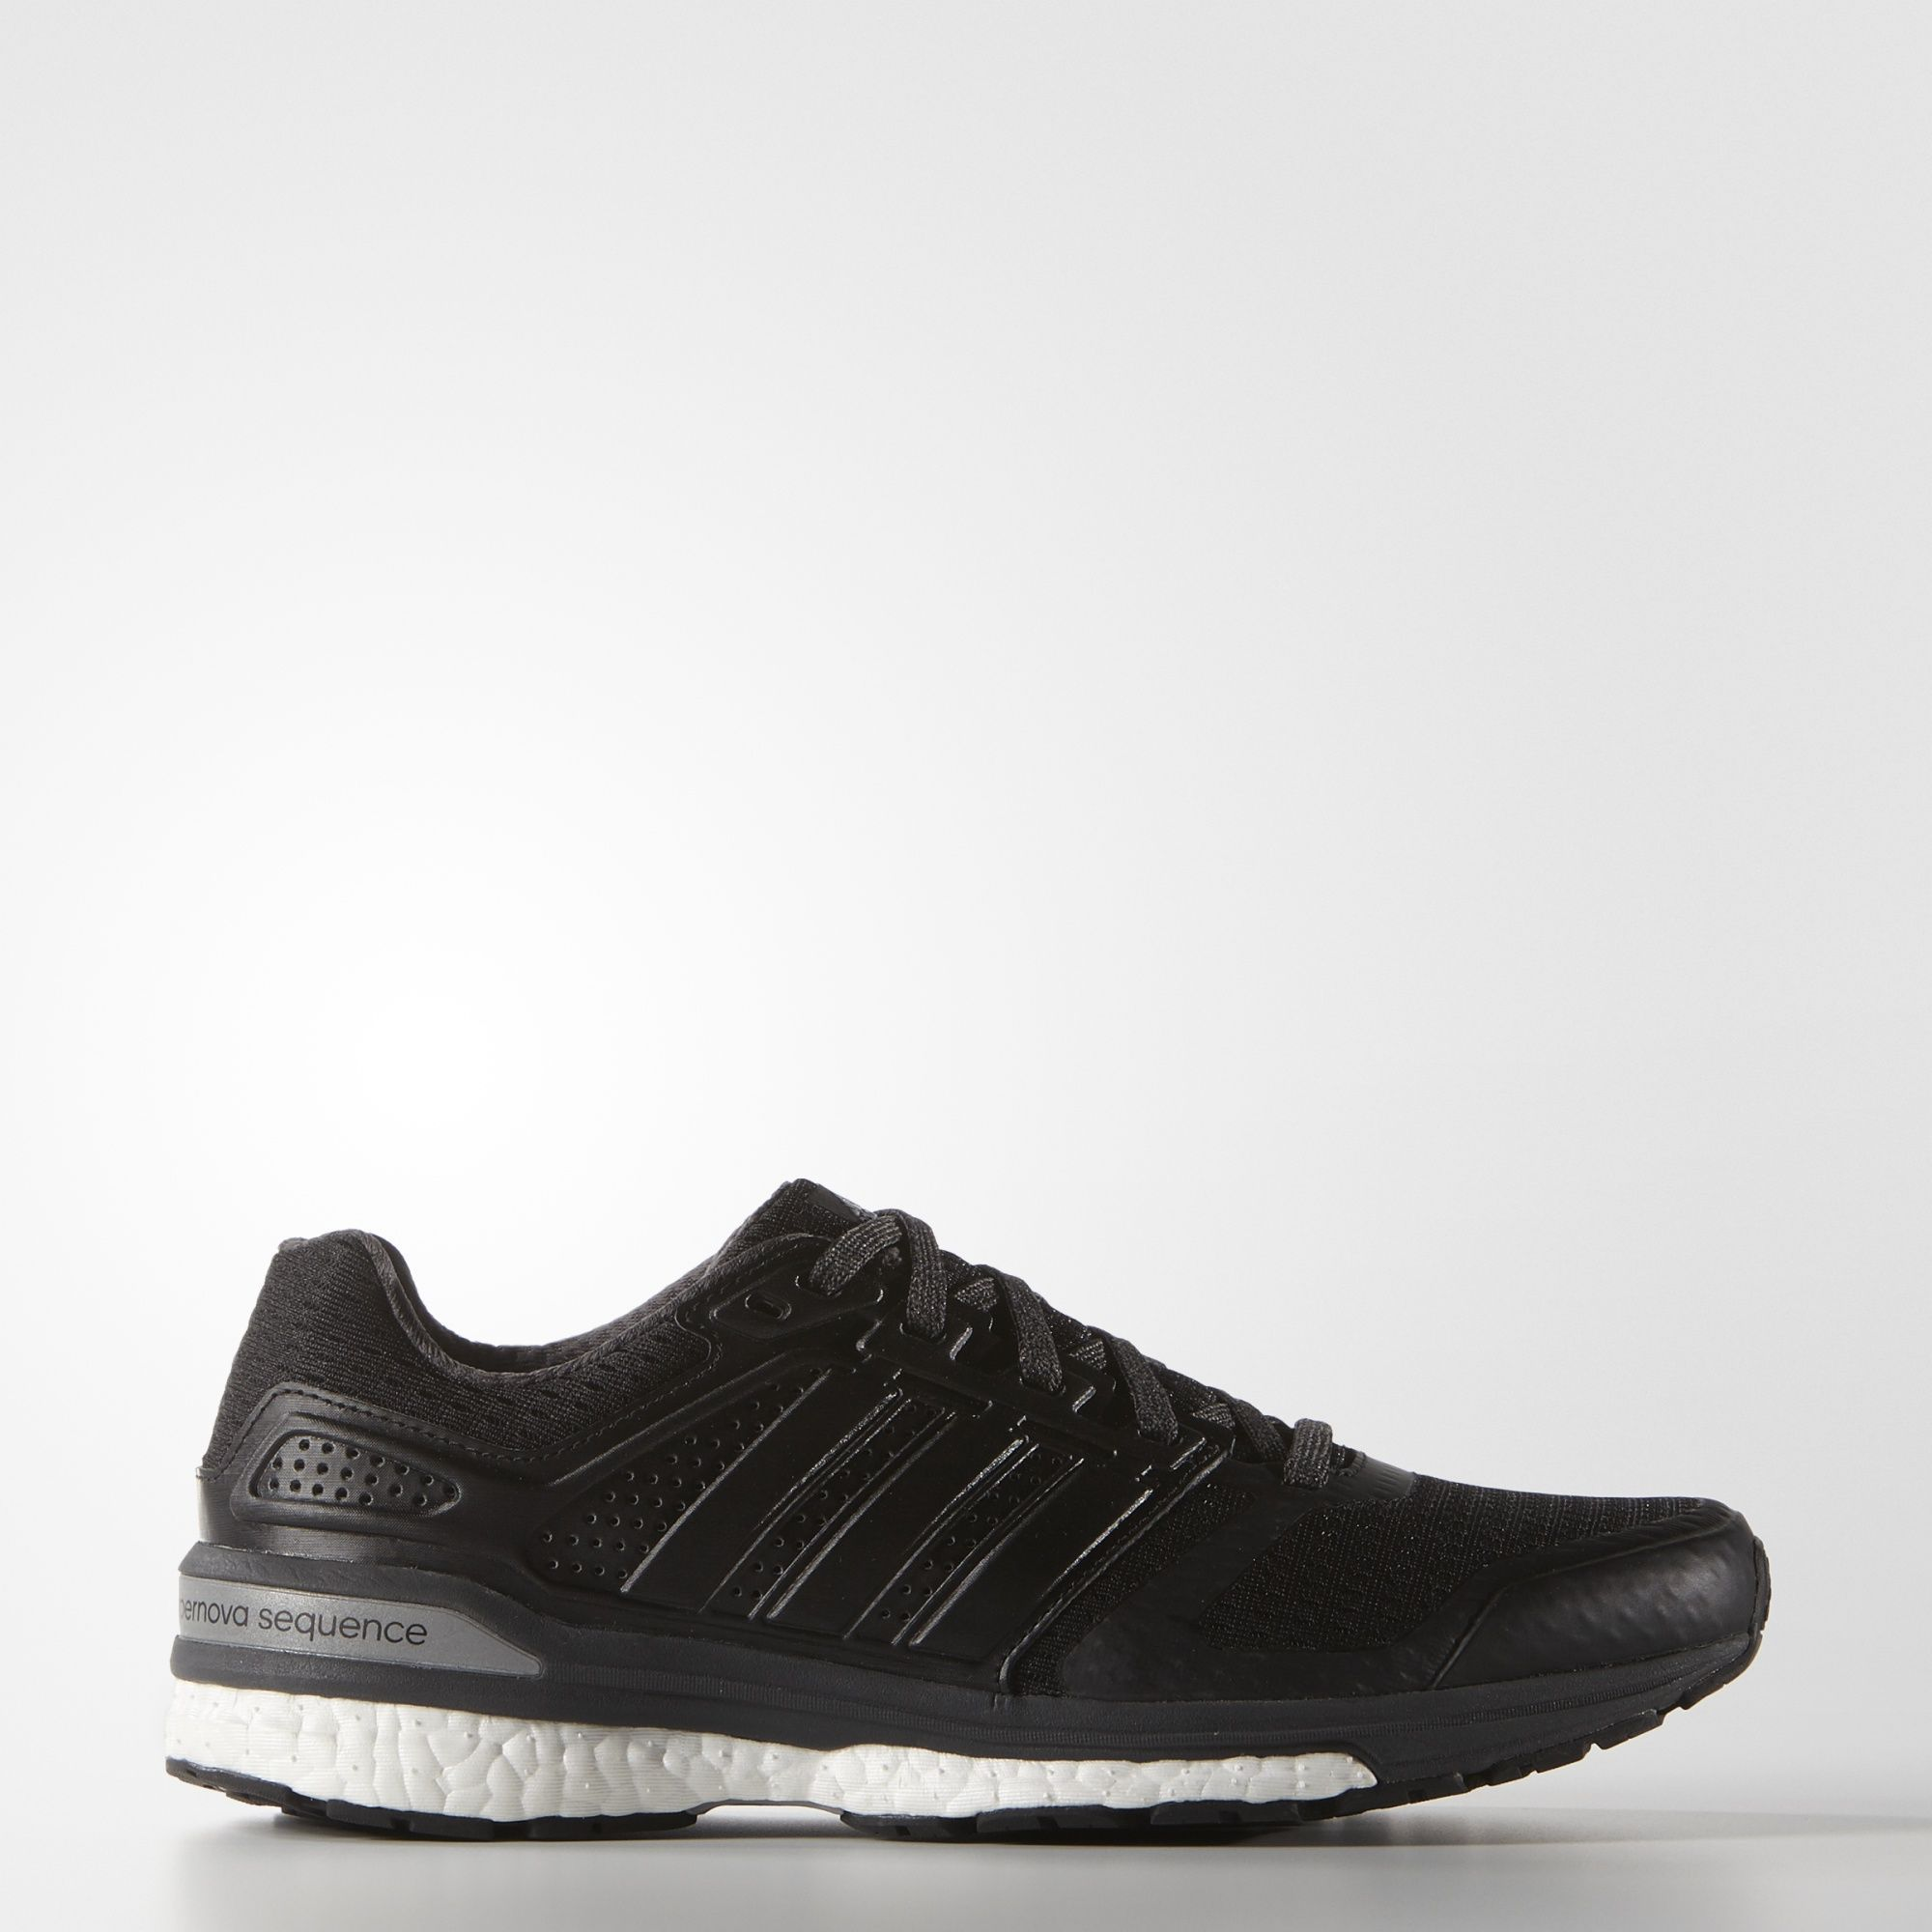 Adidas Shoes With Rips